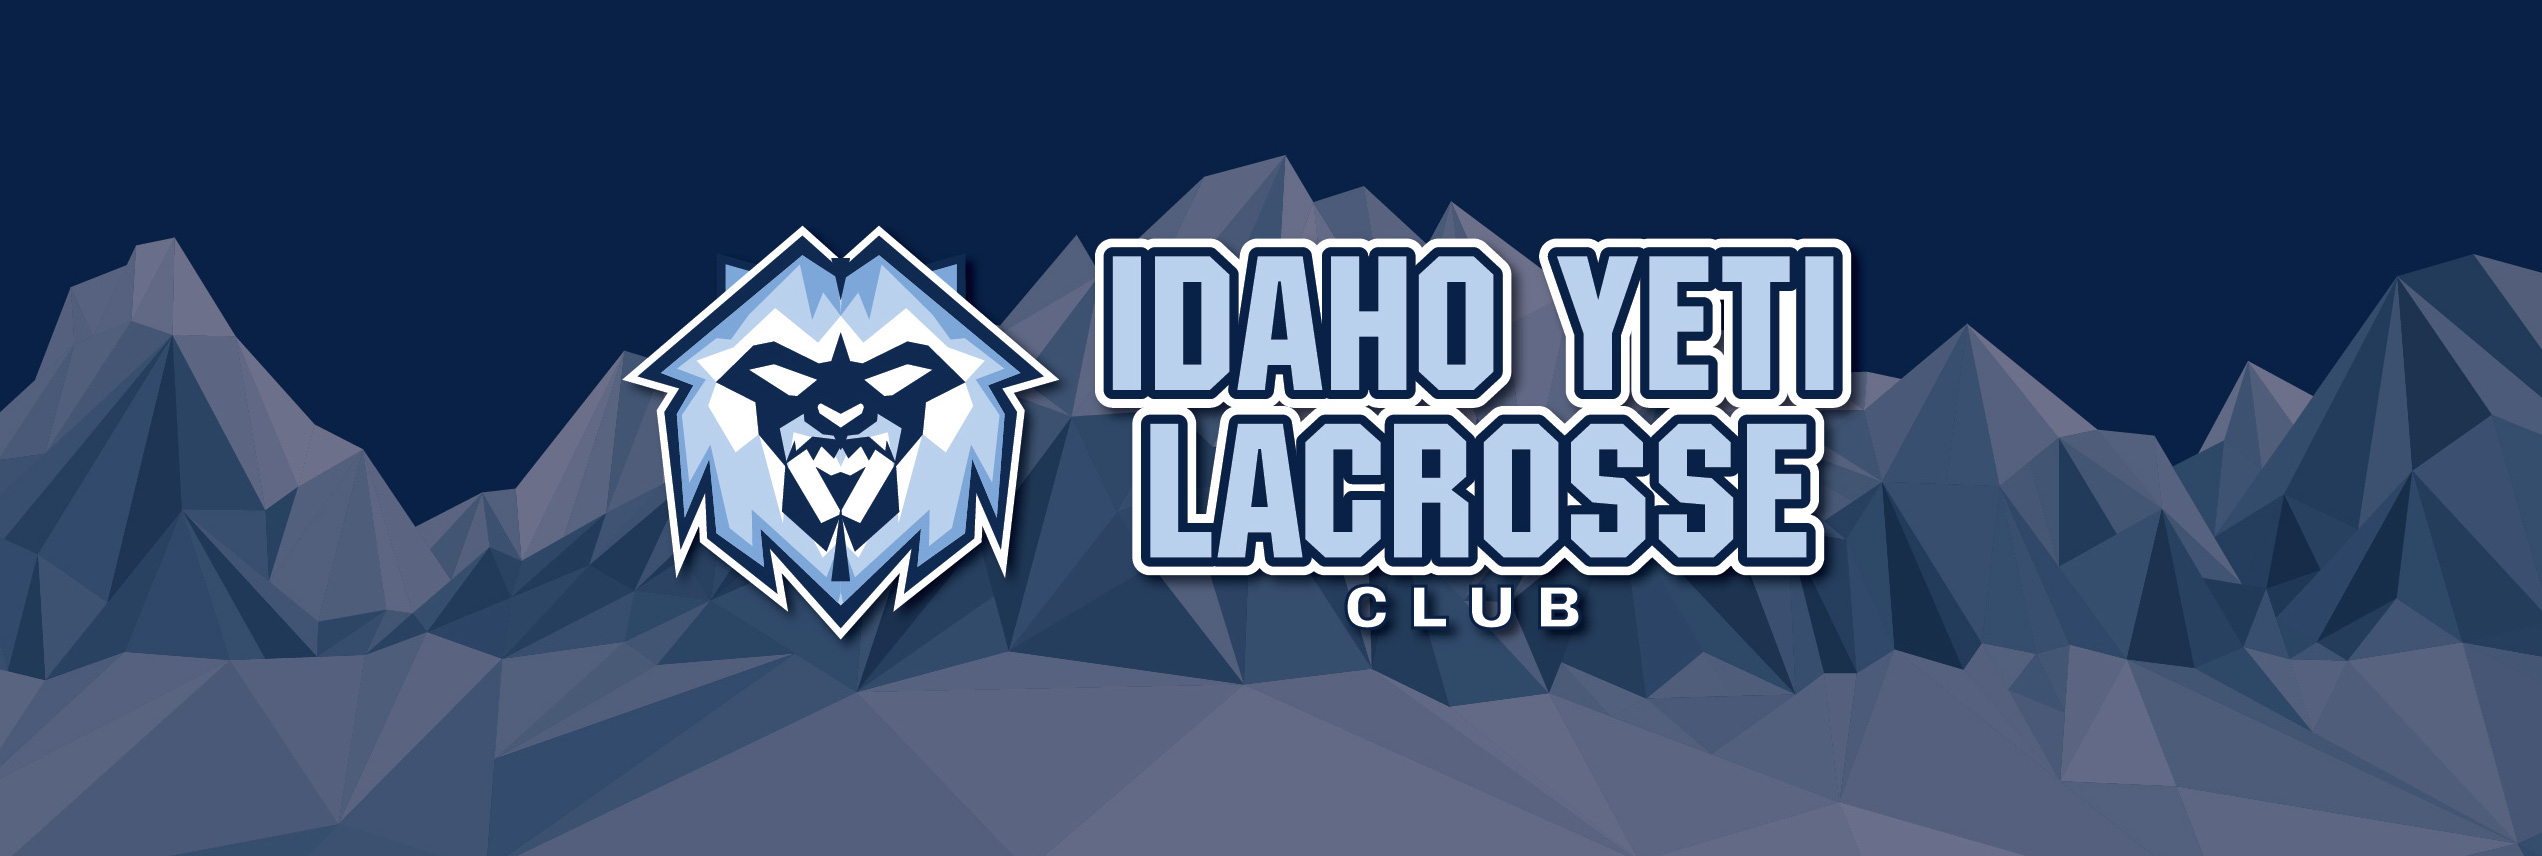 Idaho yeti 2018 youtube image